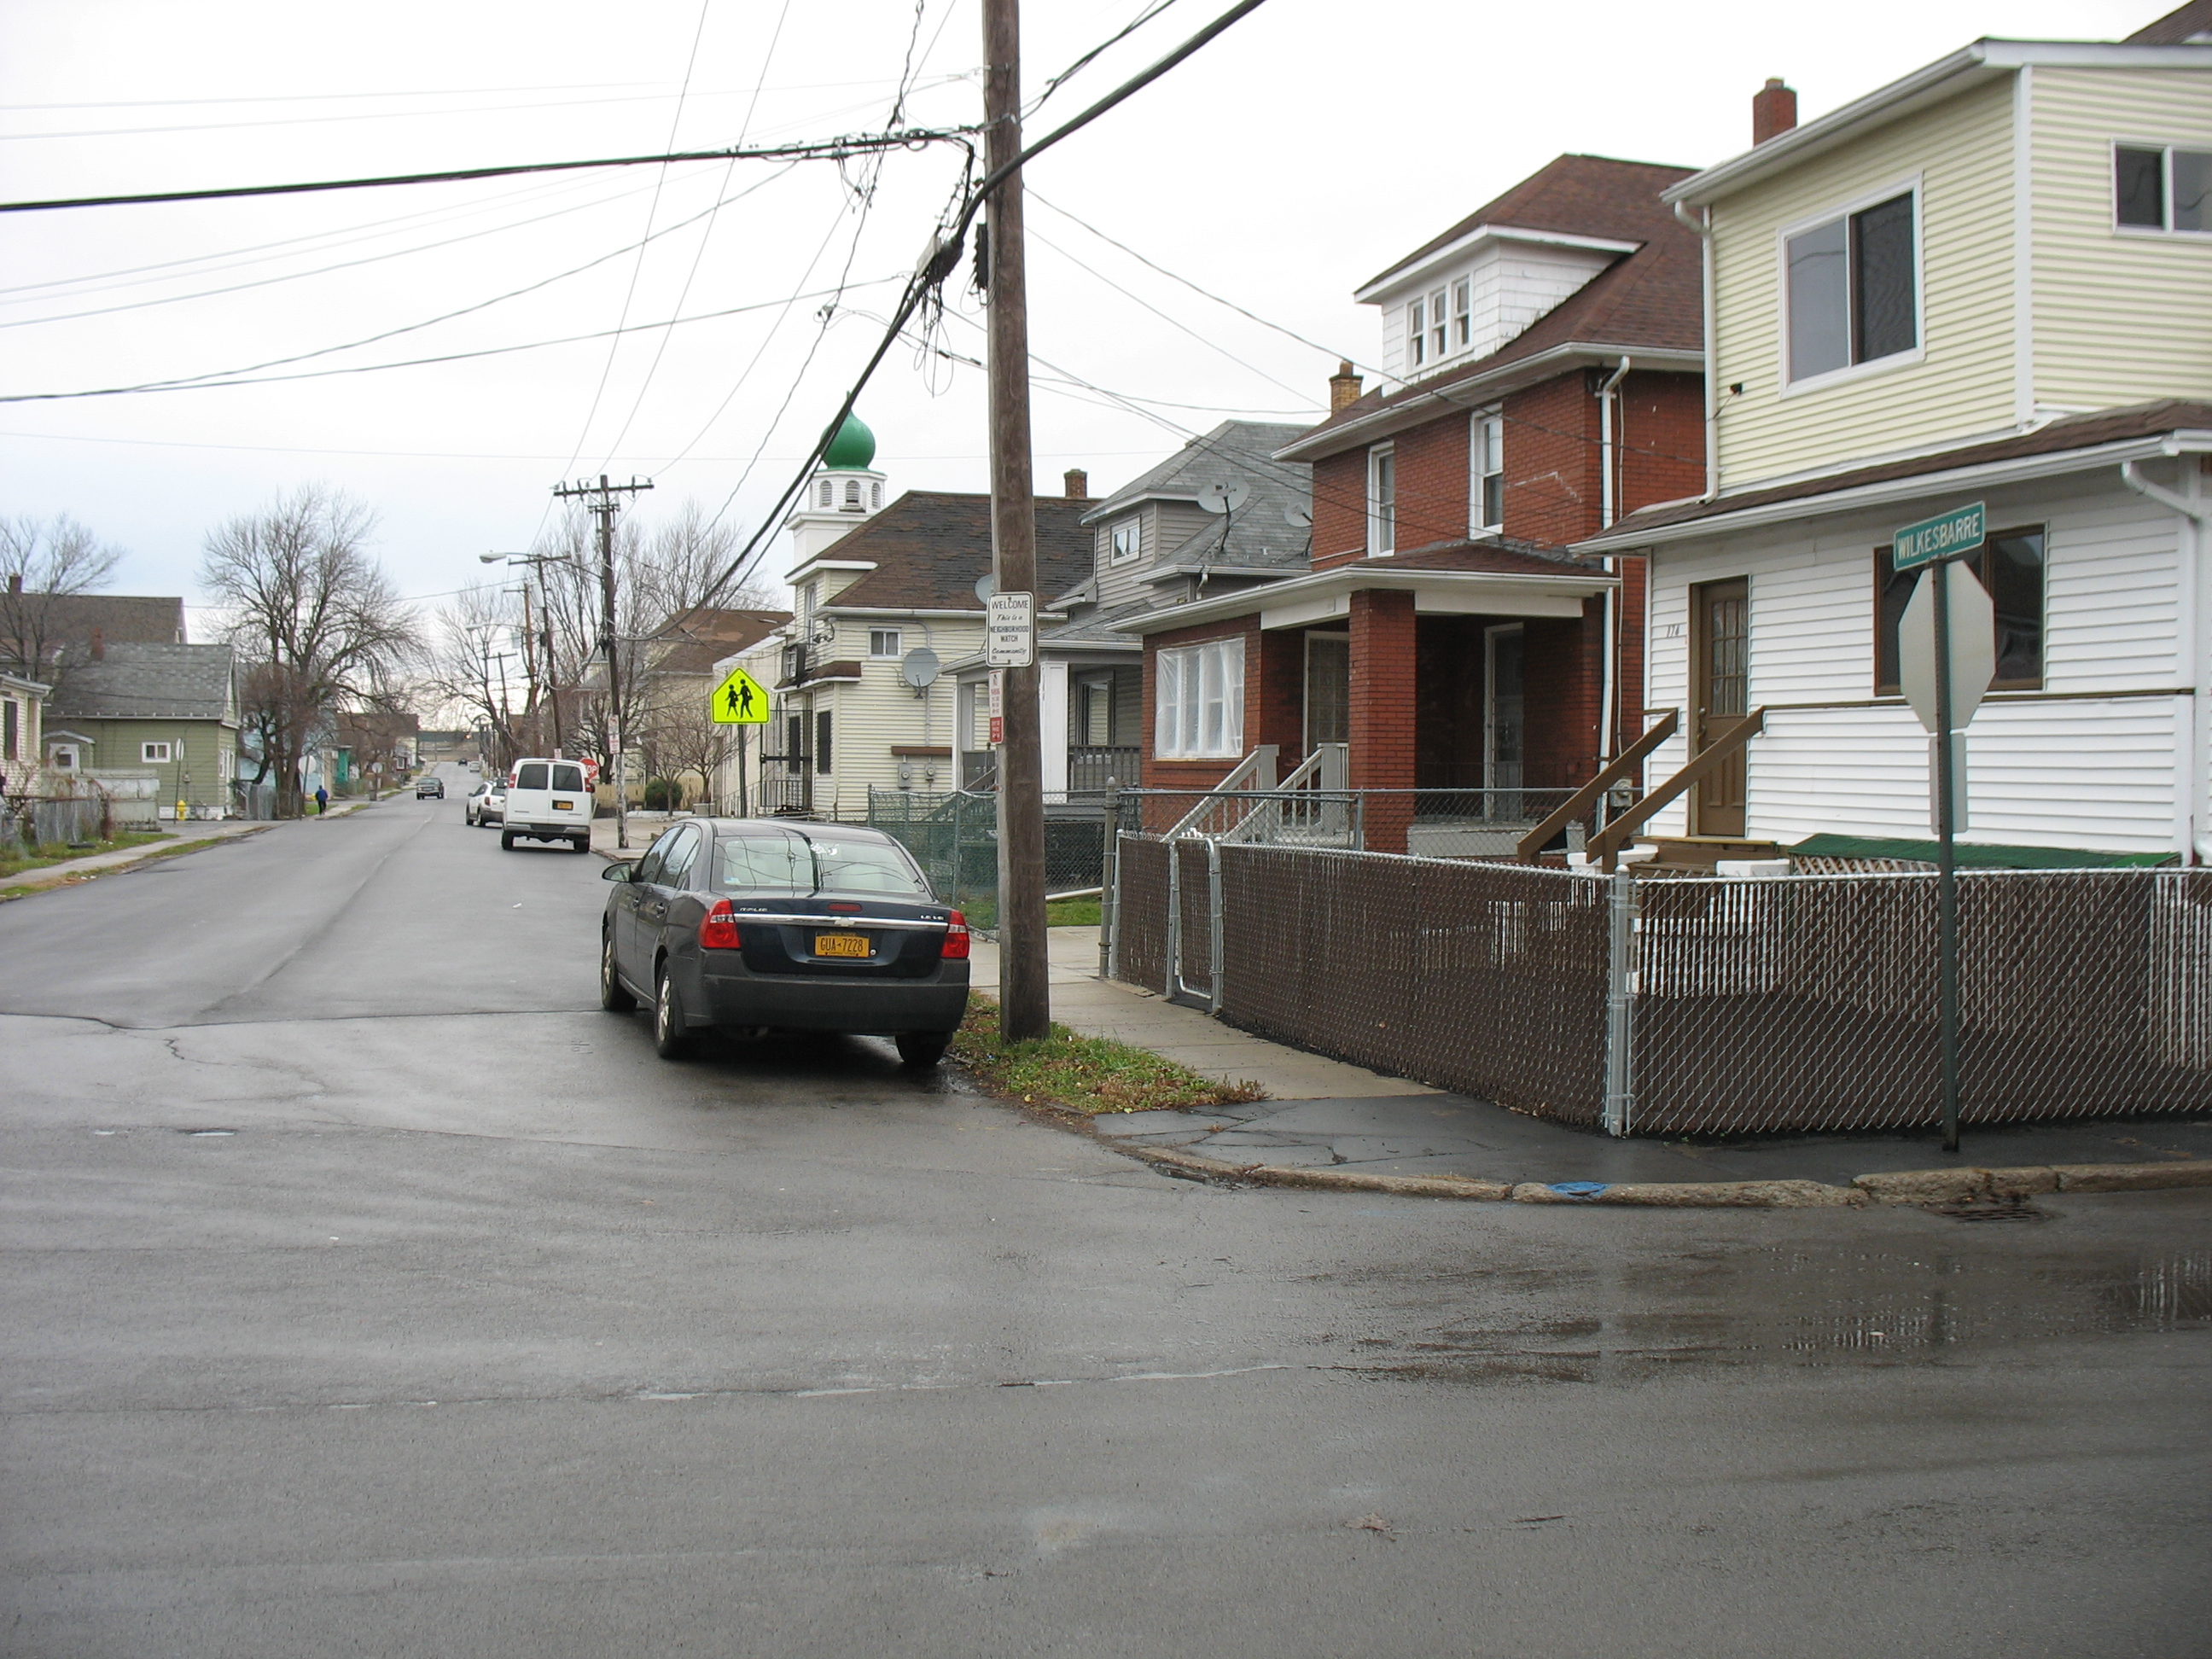 2015 - City of Lackawanna - Road paving project - Wilkesbarre Streets